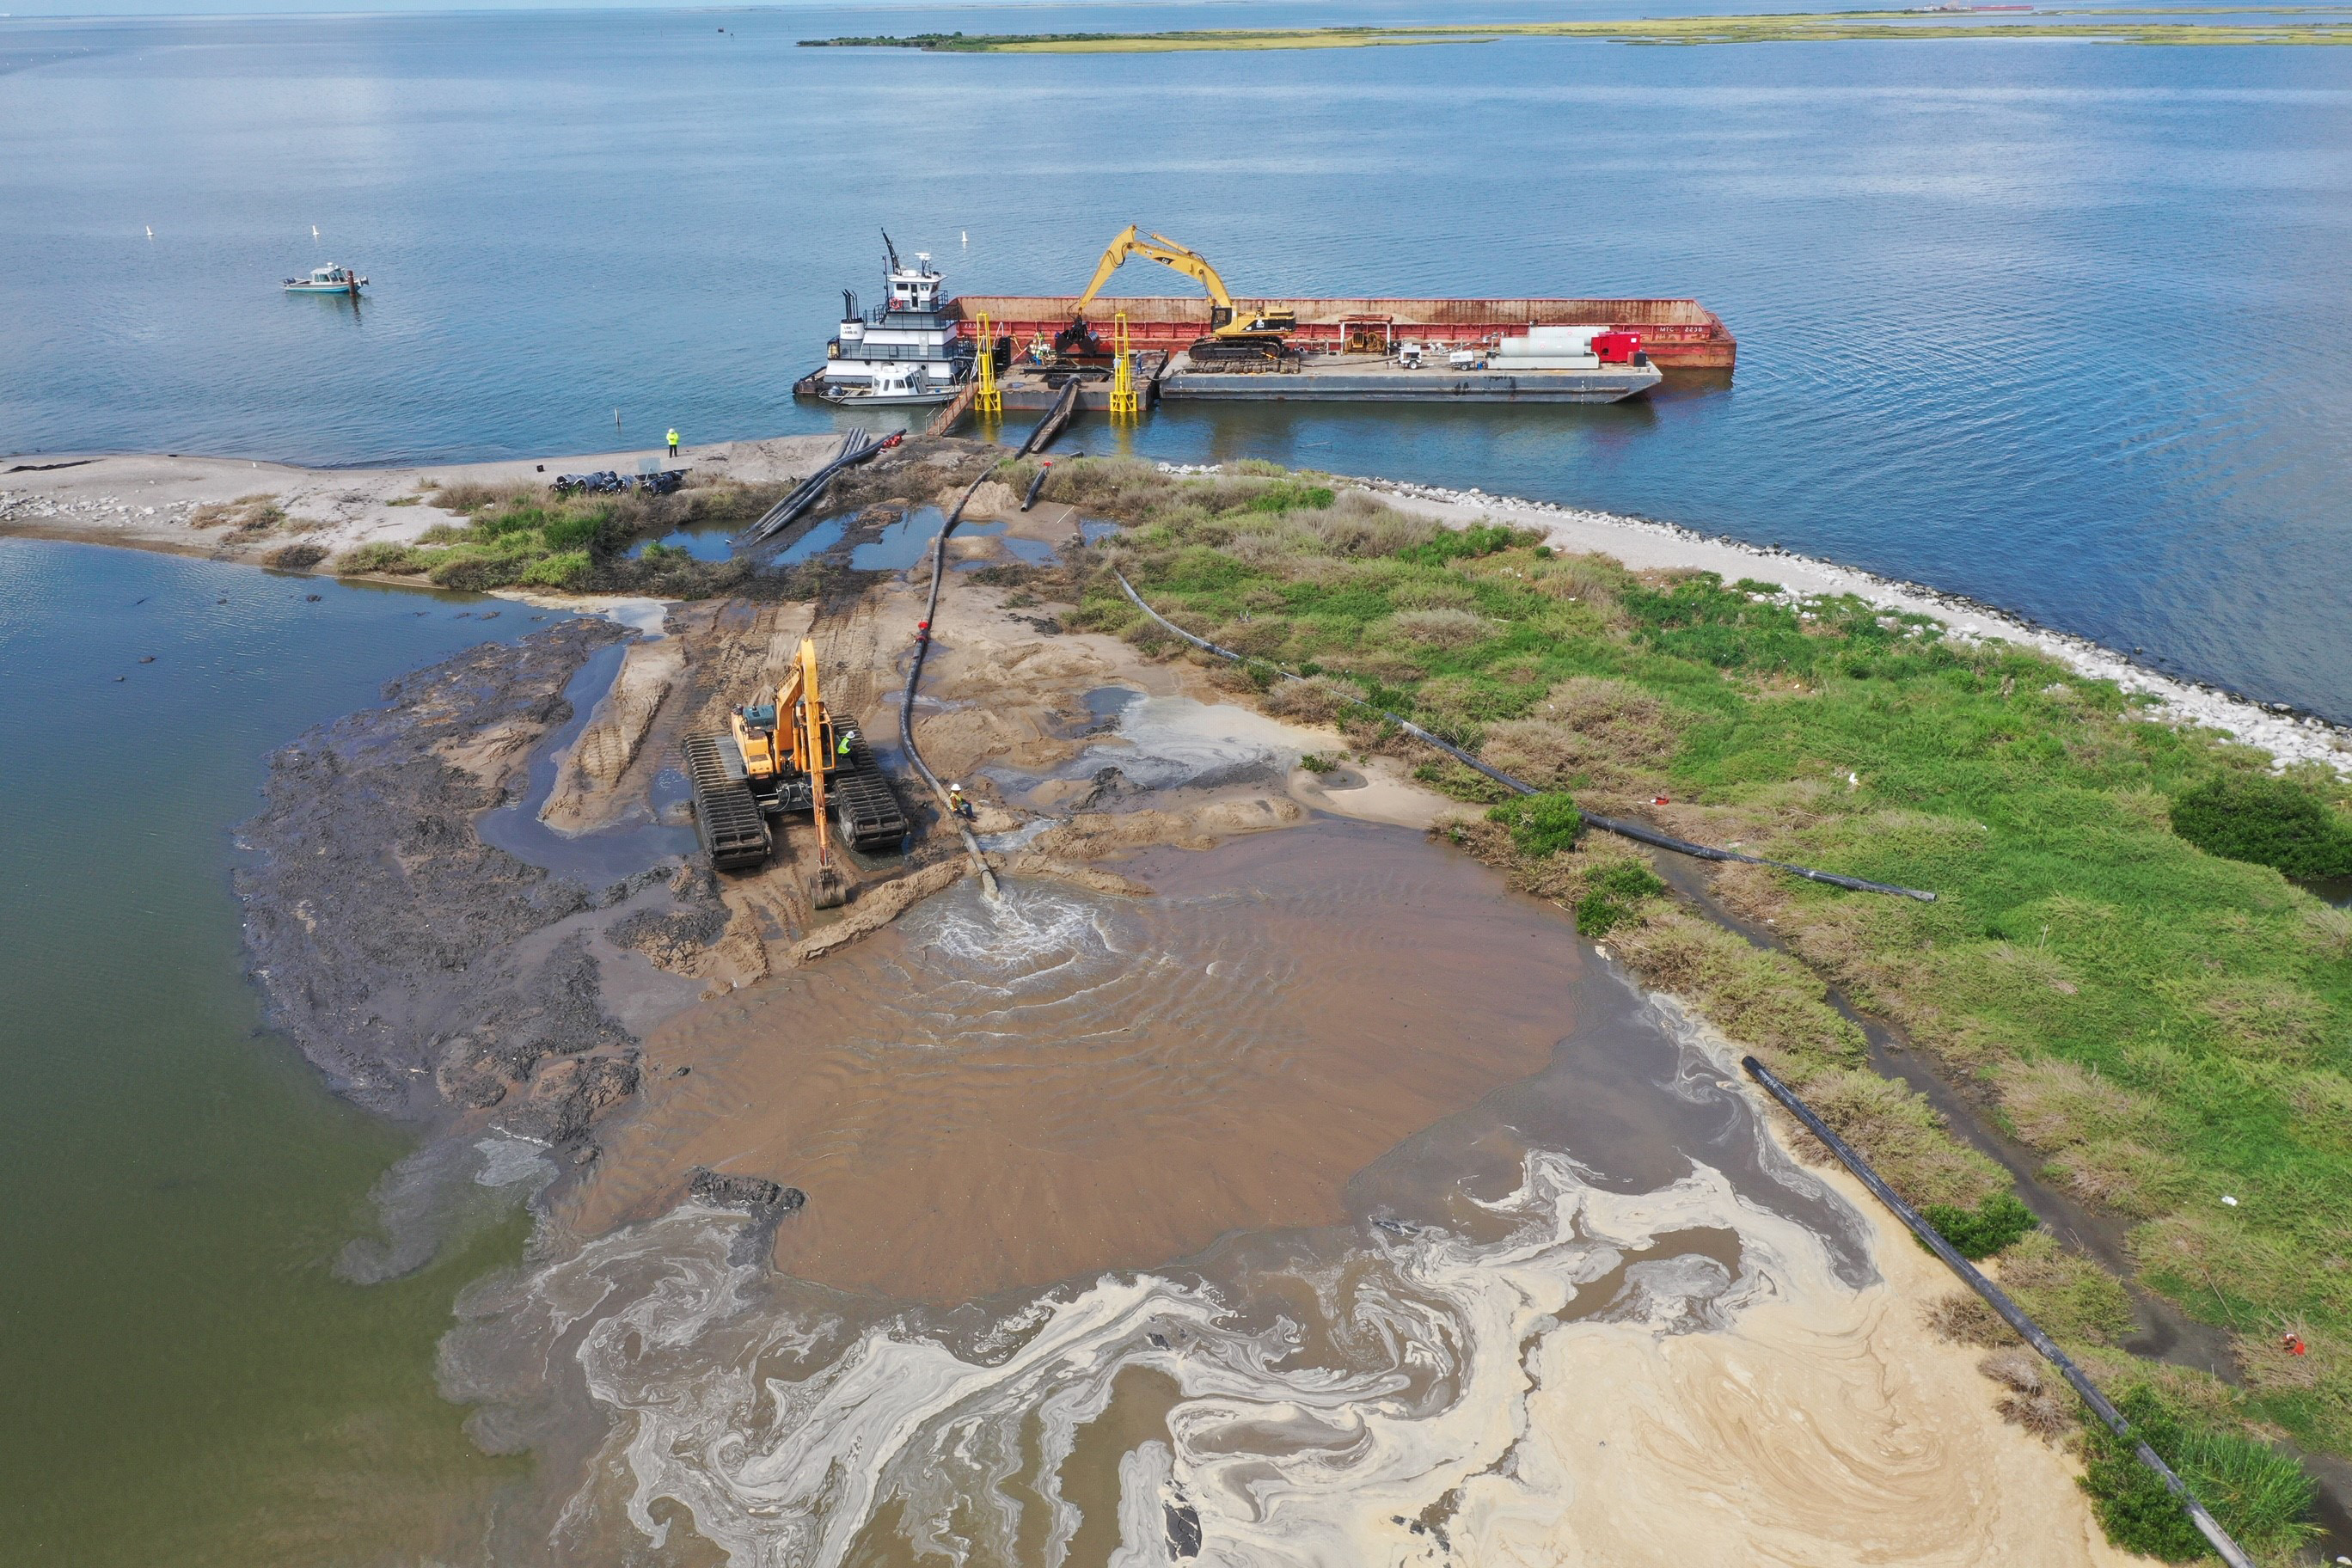 Equipment delivers sand onto a sliver of an island in the Gulf of Mexico.